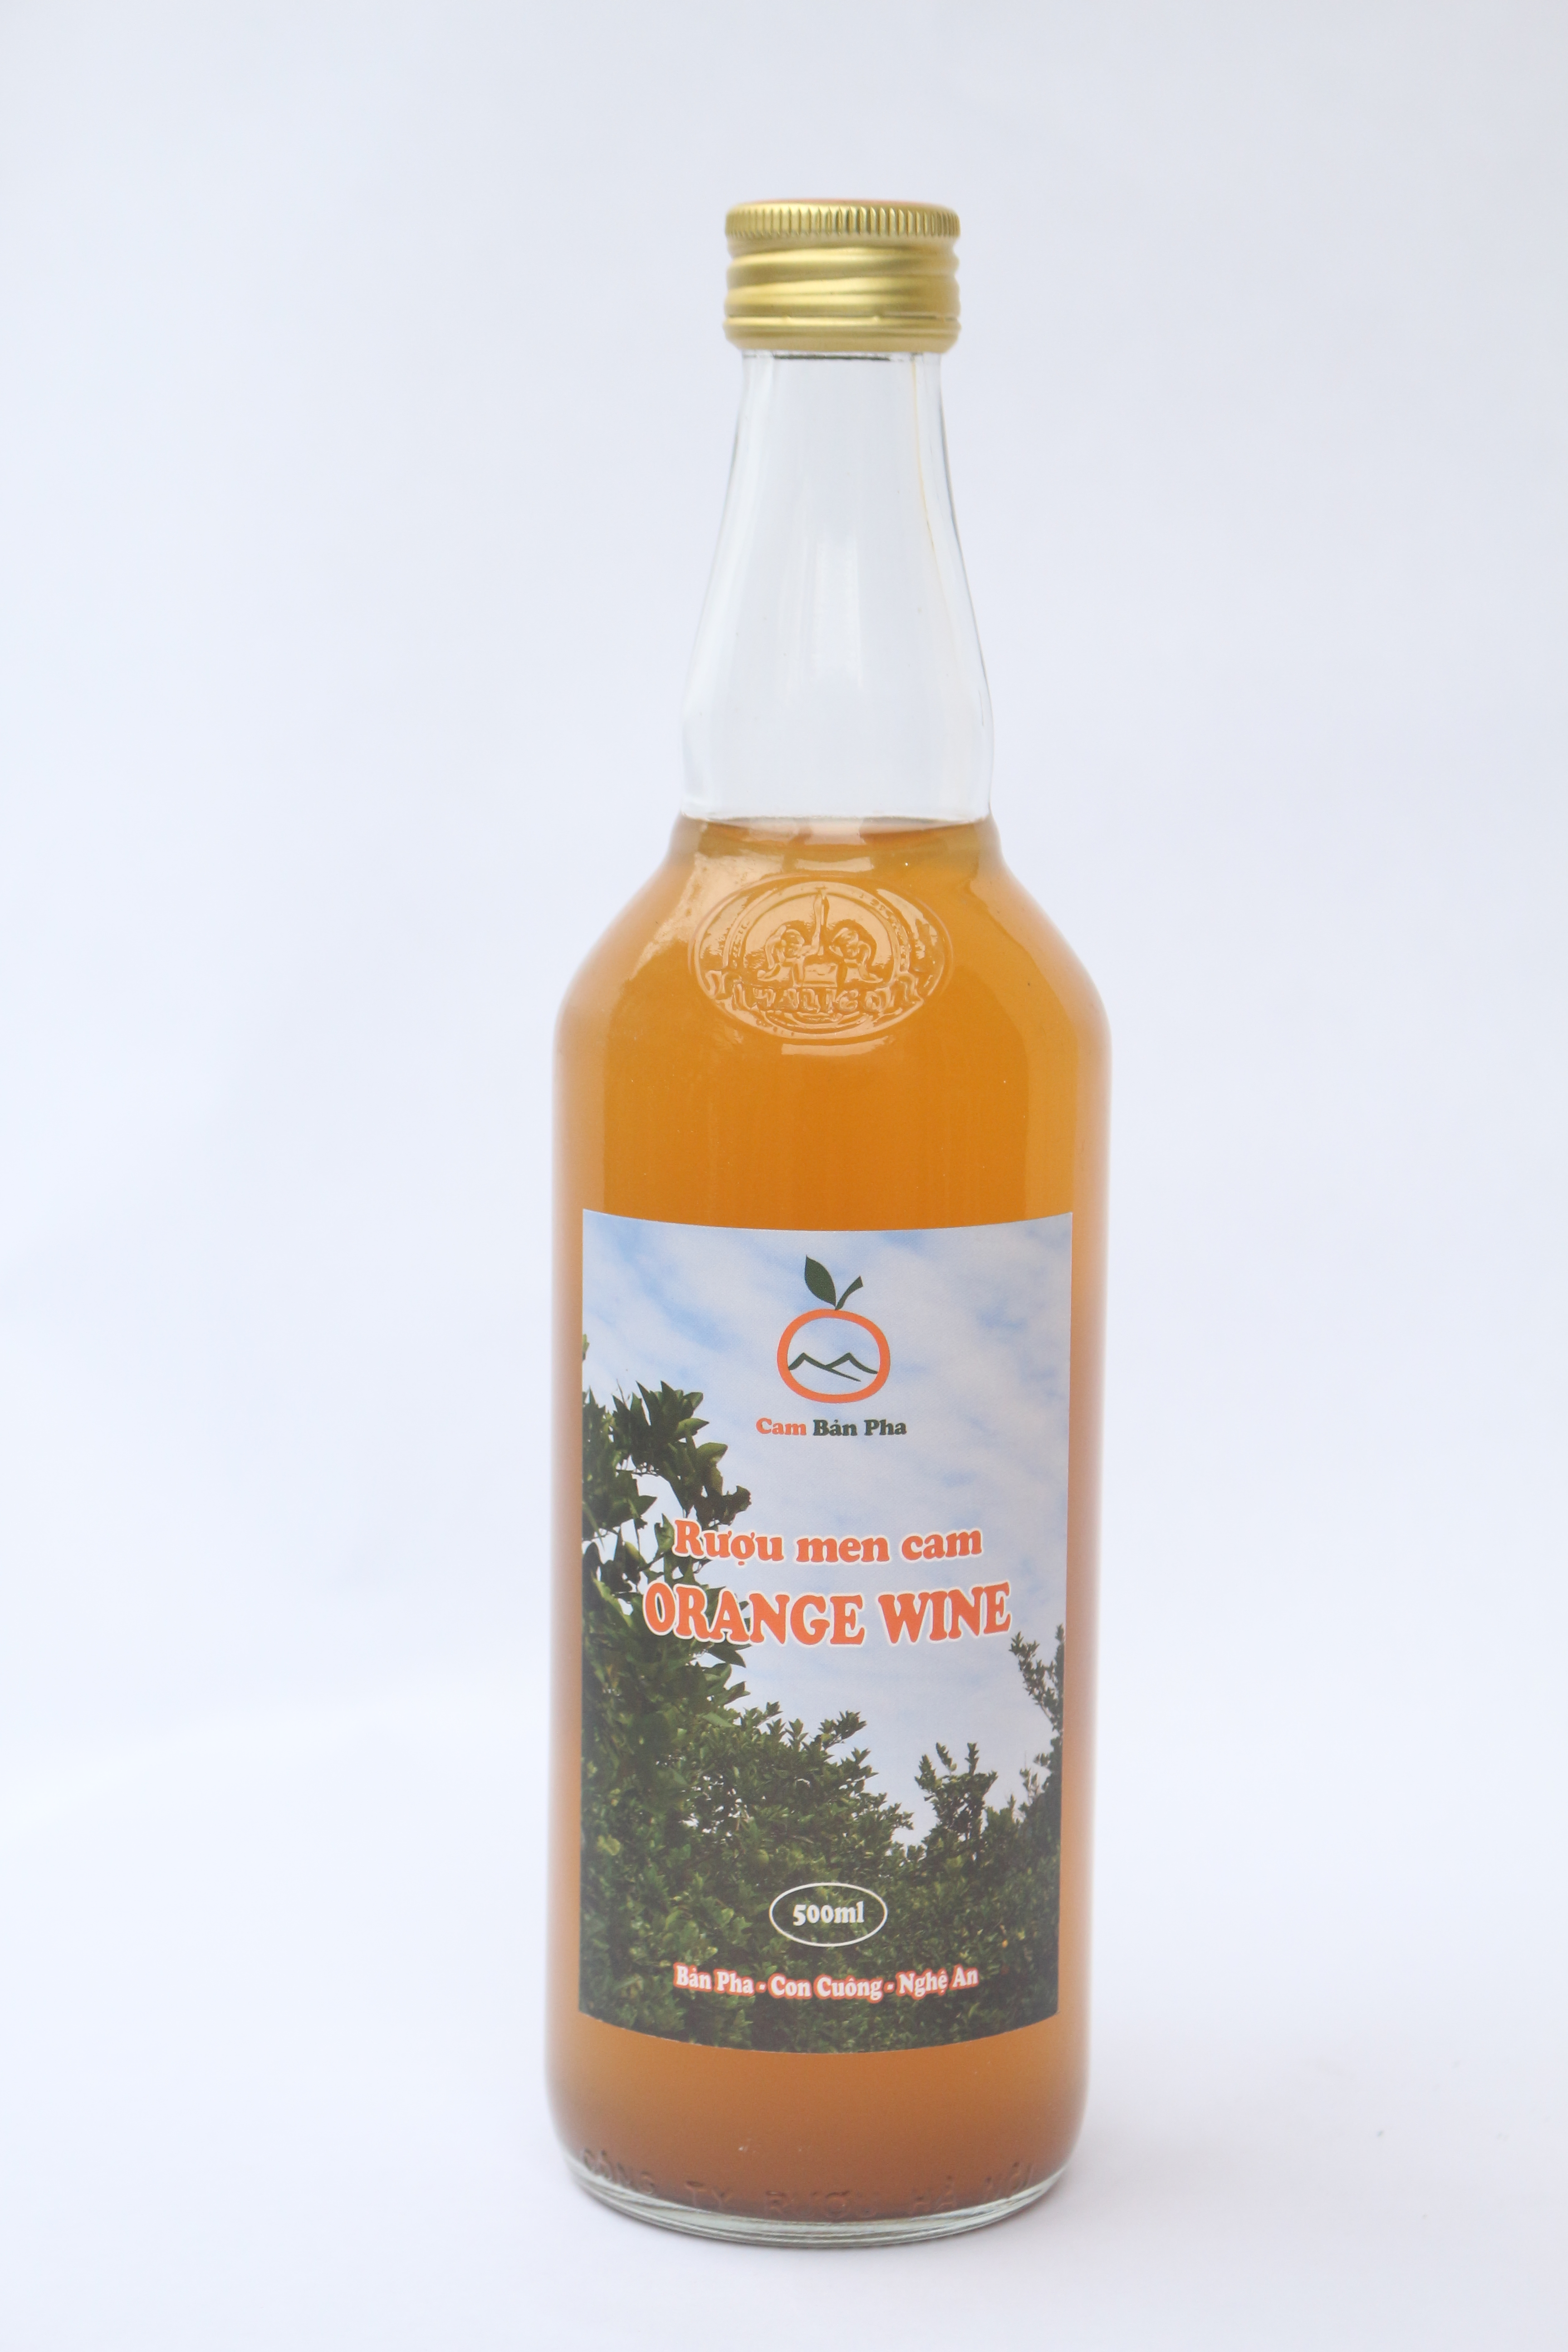 Fermented orange wine